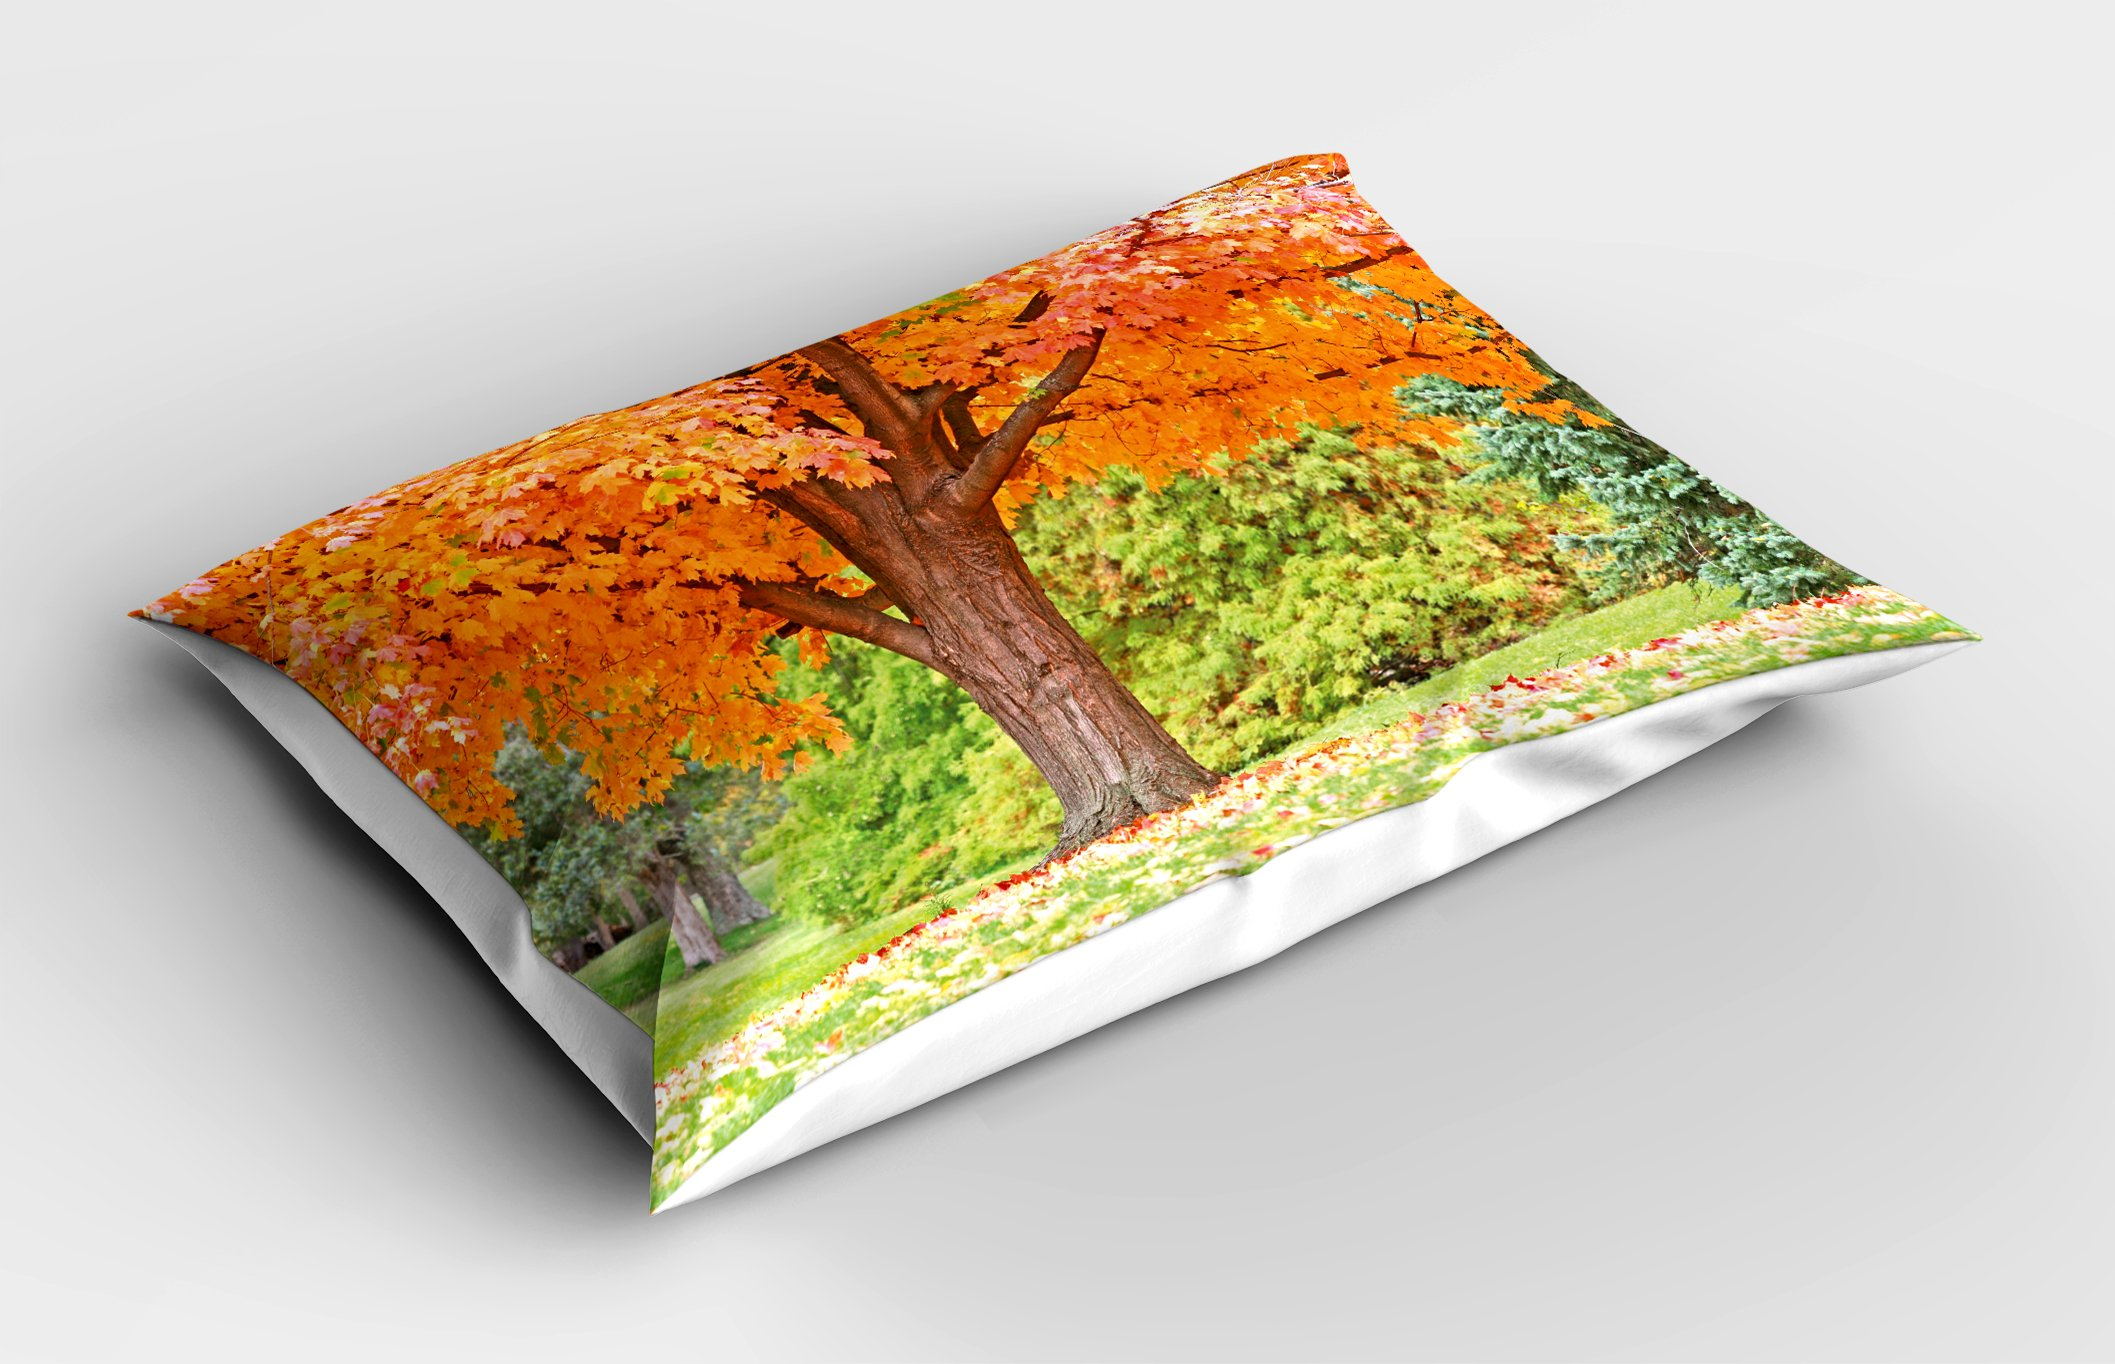 Lunarable Nature Pillow Sham, Vibrant Tree Forest Autumn Season Fall in Woods Scenic Scenery Landscape, Decorative Standard King Size Printed Pillowcase, 36 X 20 inches, Orange Green Brown by Lunarable (Image #2)